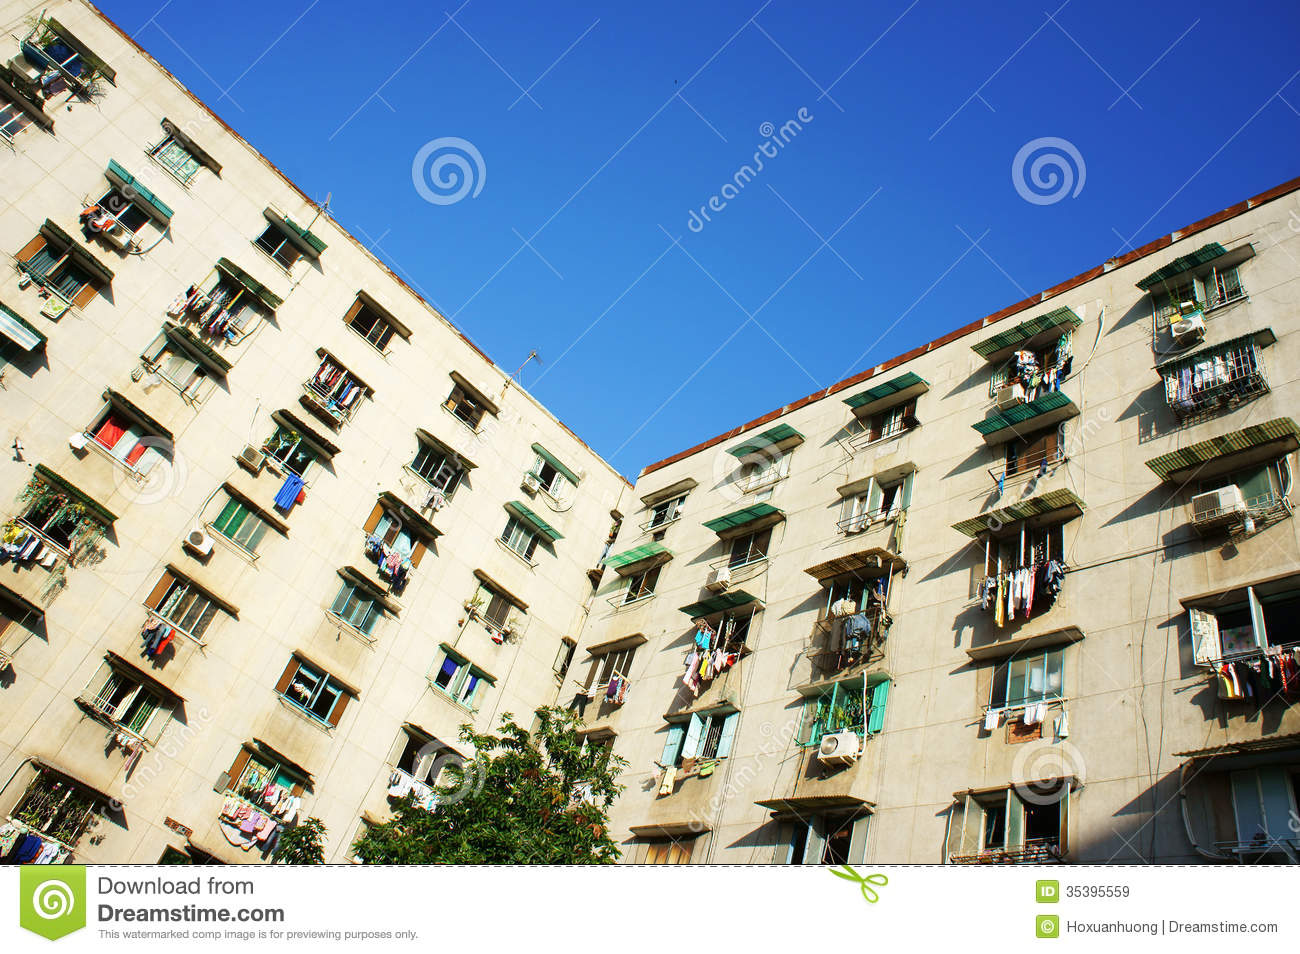 Old apartment building with rows of windows under blue sky